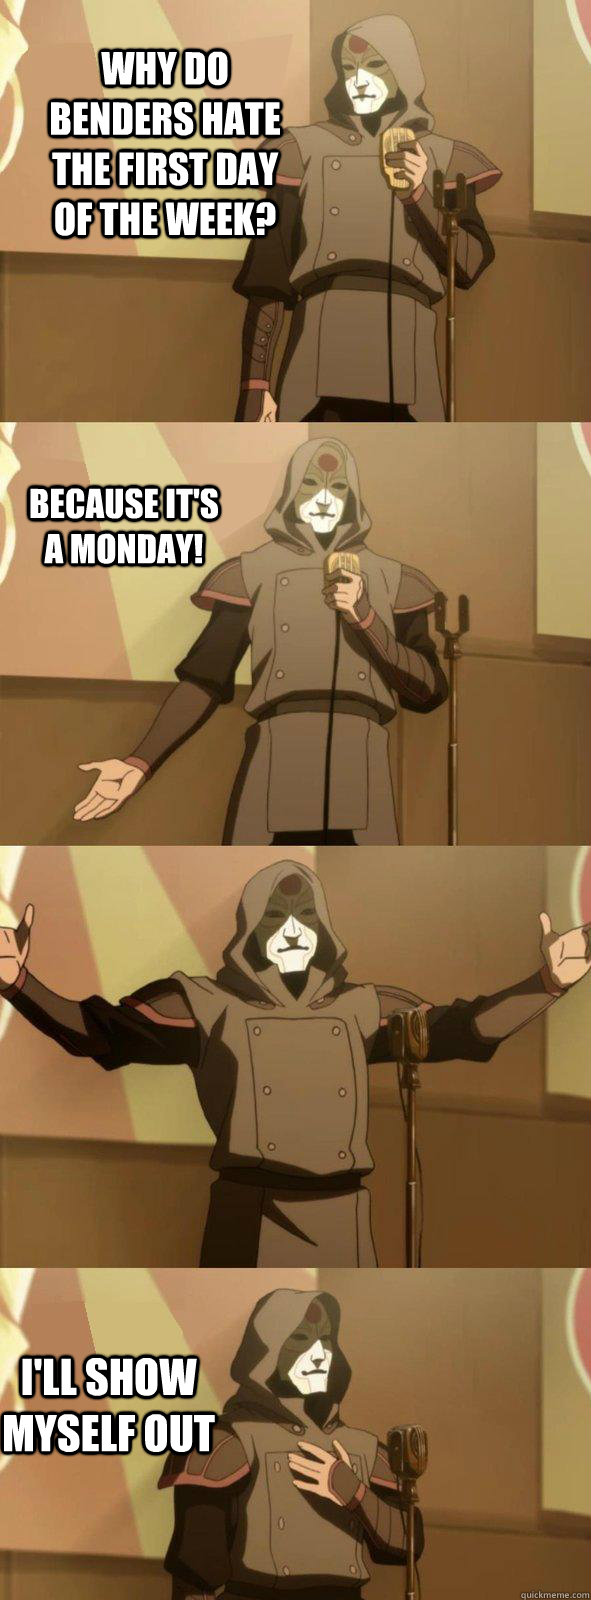 Why do benders hate the first day of the week?  I'll show myself out Because it's a Monday!  Bad Joke Amon